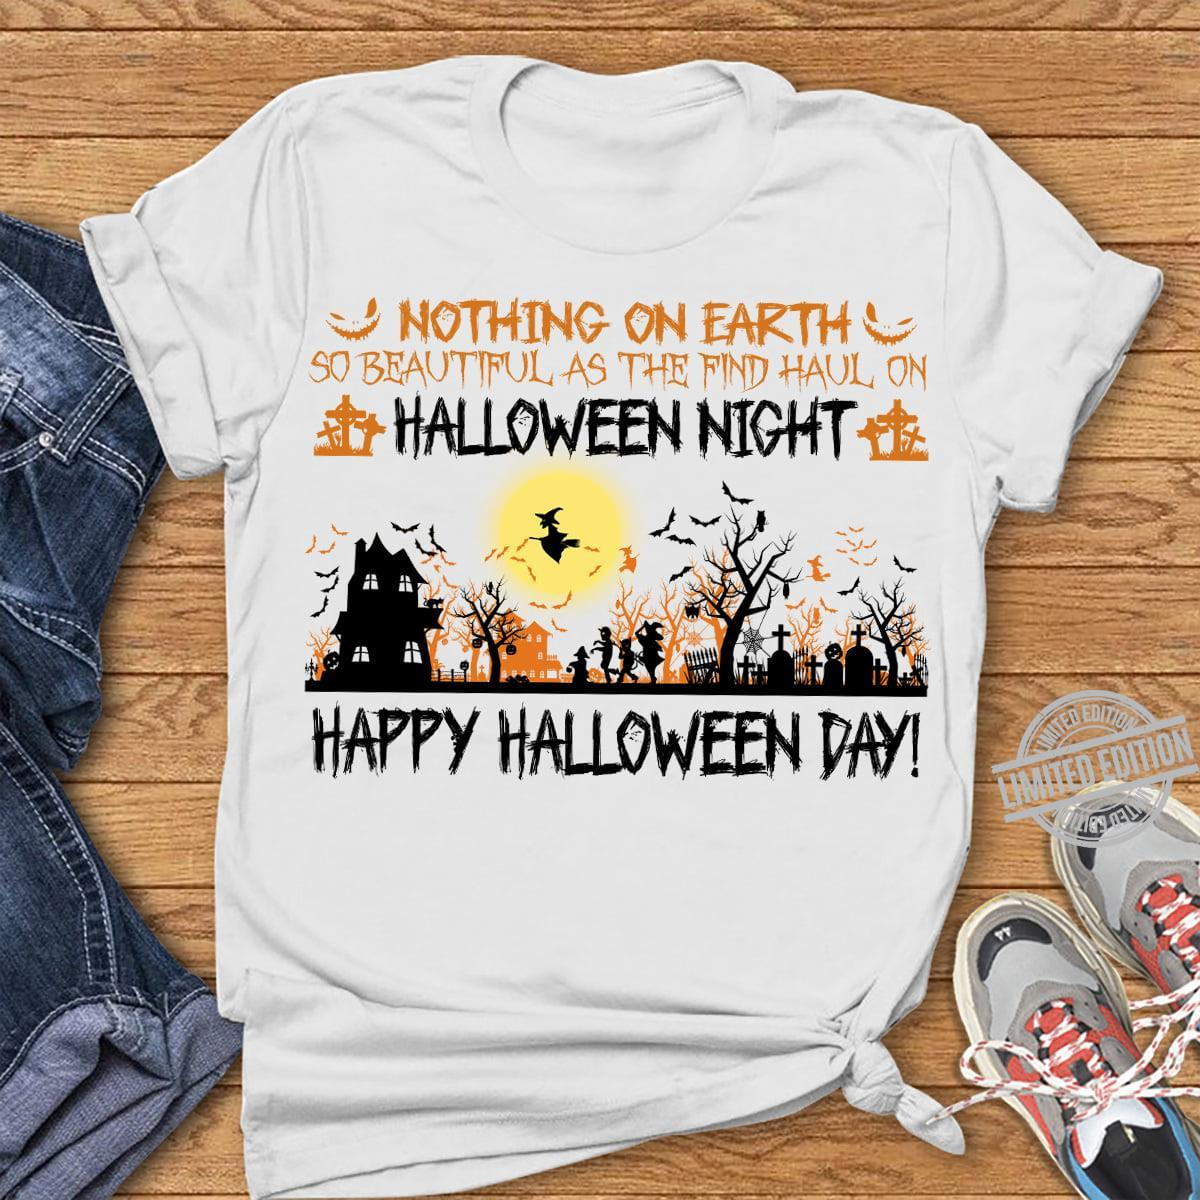 Nothing On Earth So Beautiful As The Find Haul On Halloween Nicht Happy Halloween Day Shirt